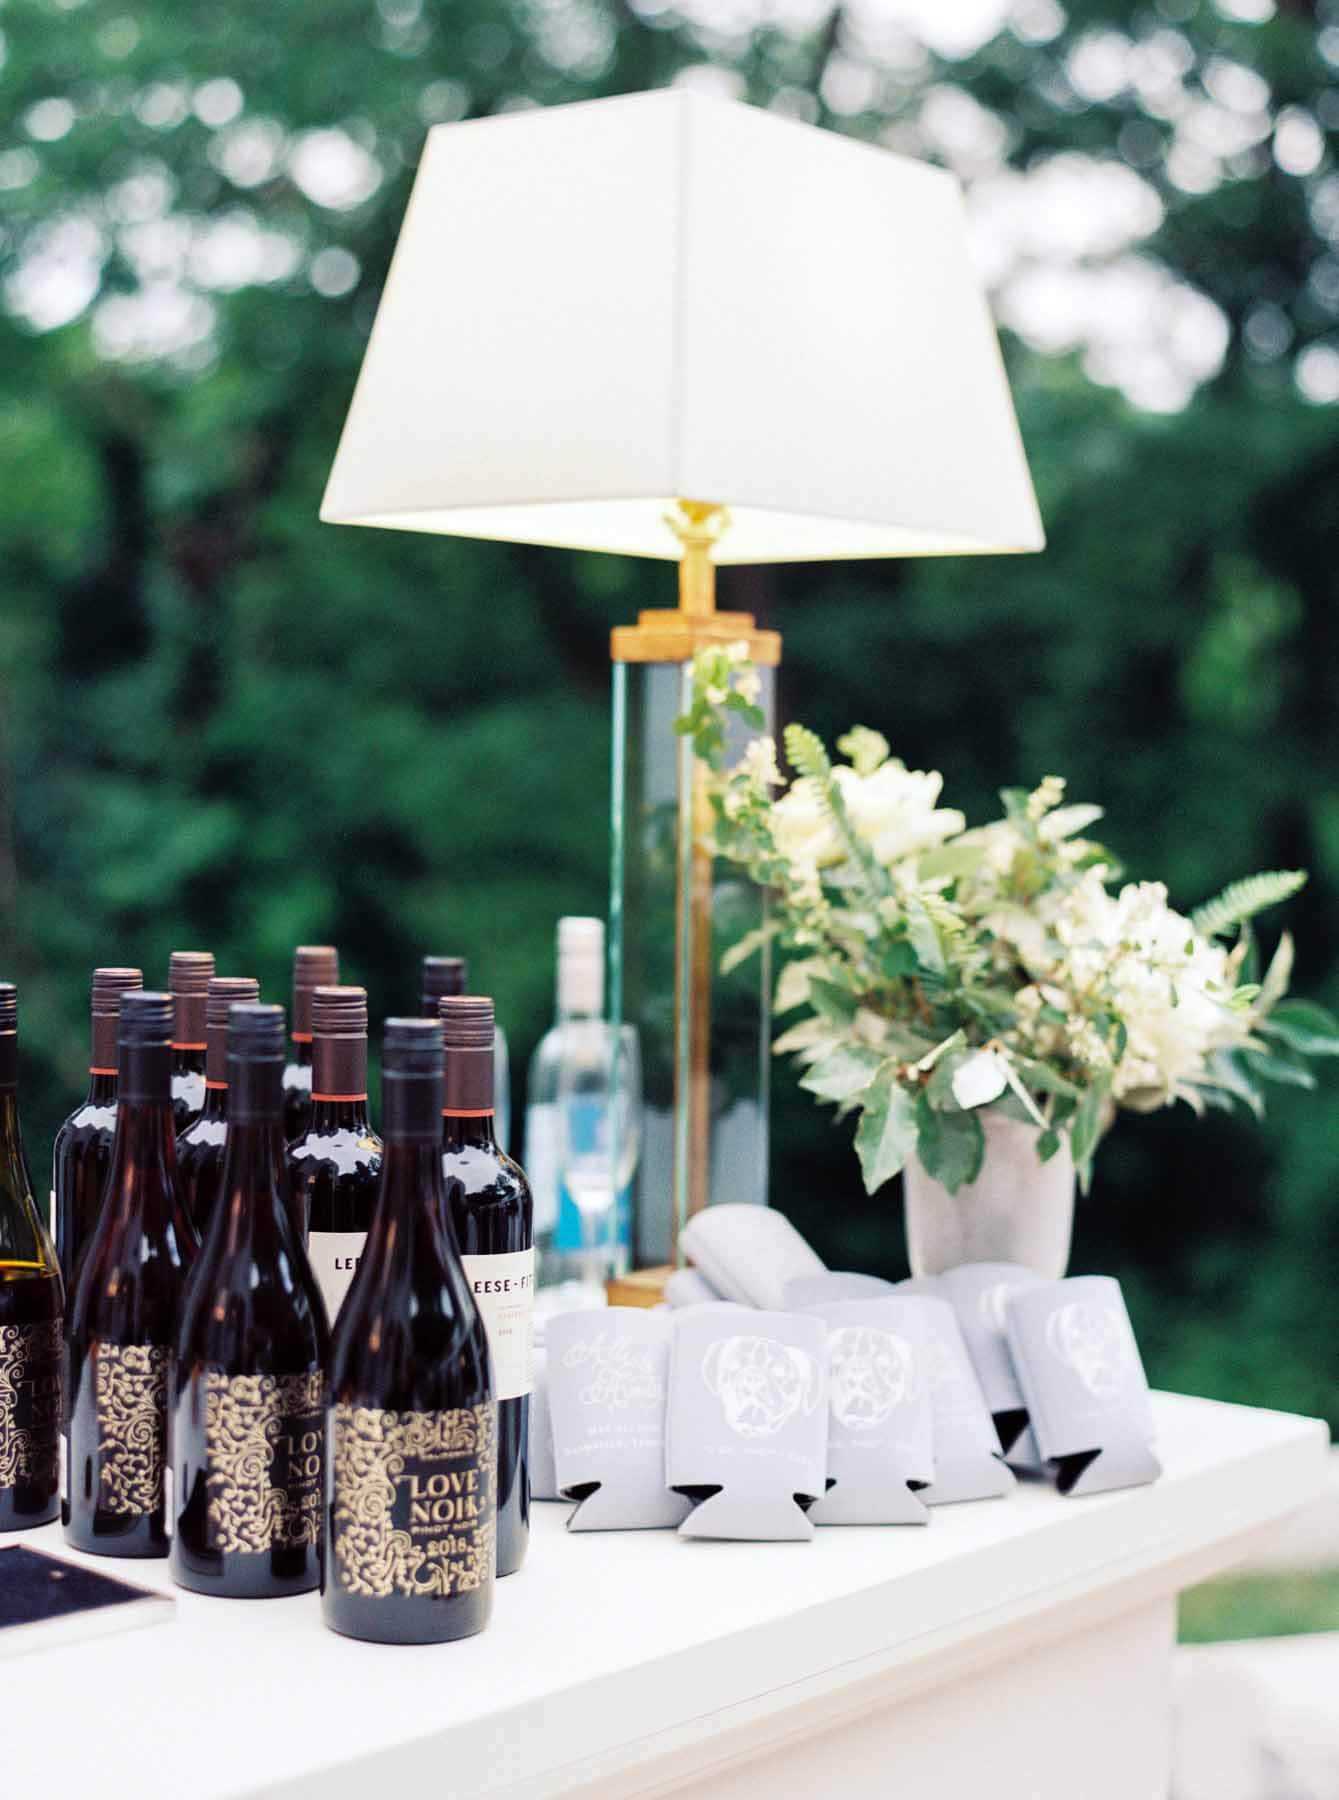 Bar setup with bottles of wine, flowers, lamp and koozies